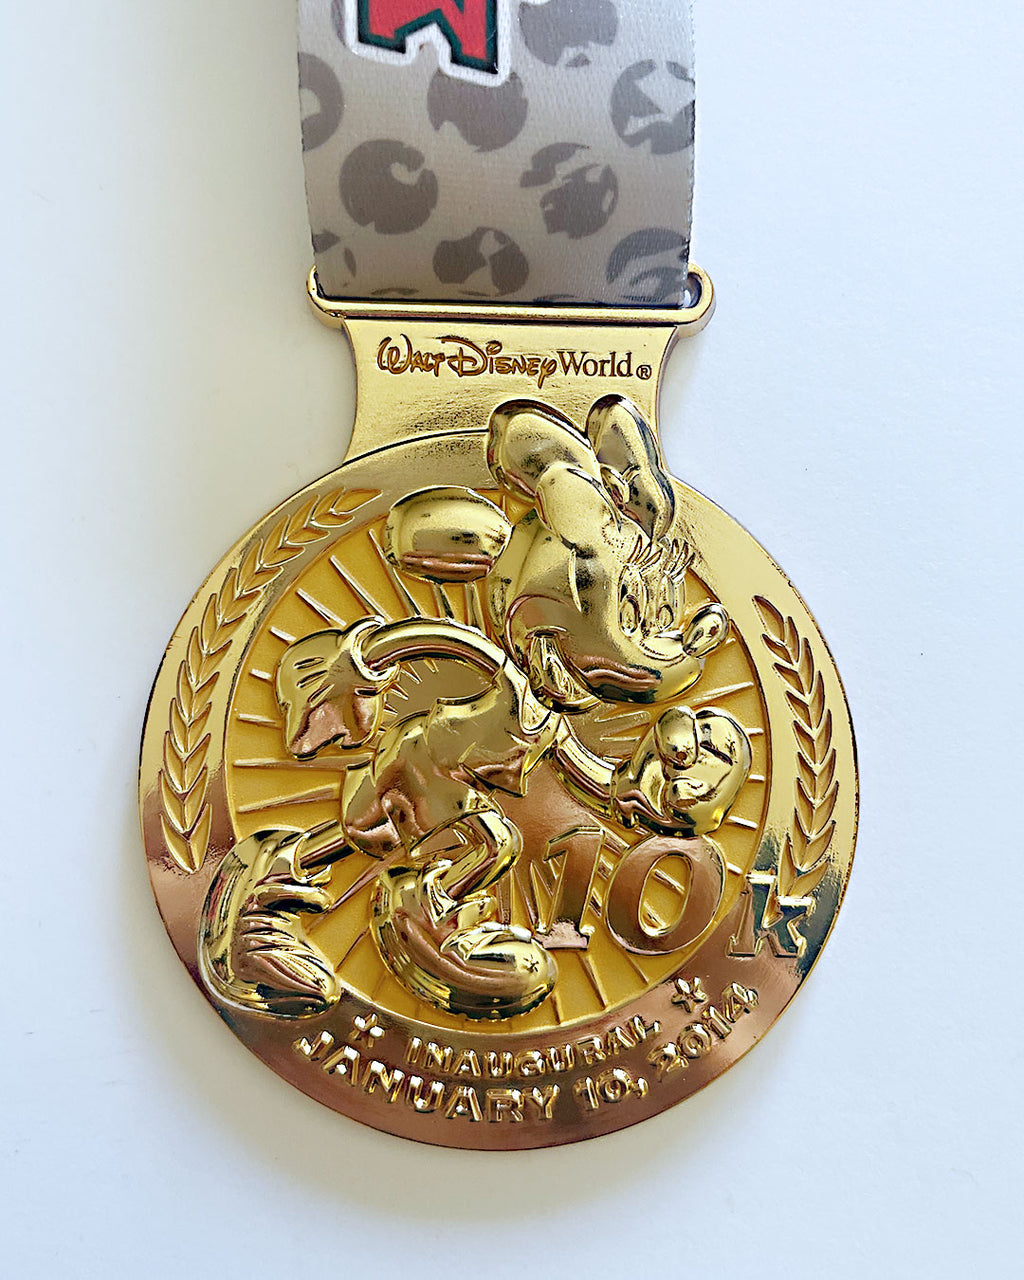 2014 Walt Disney World 10k Medal